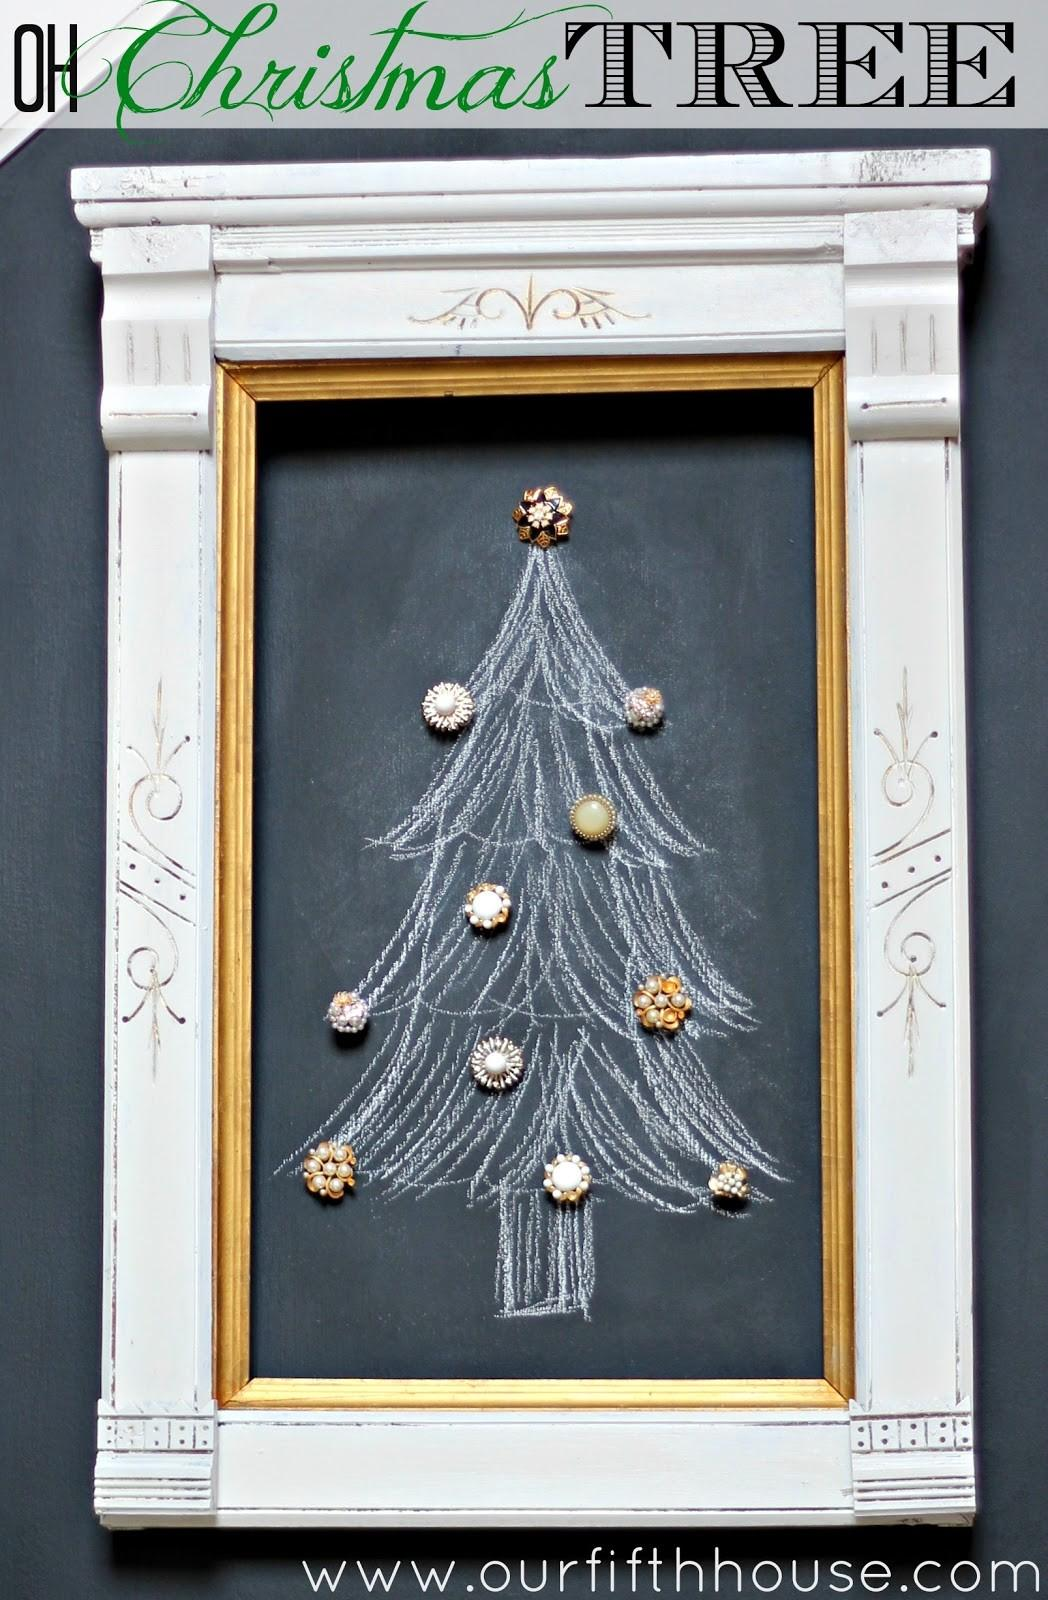 Our Fifth House Simple Vintage Chalkboard Christmas Tree